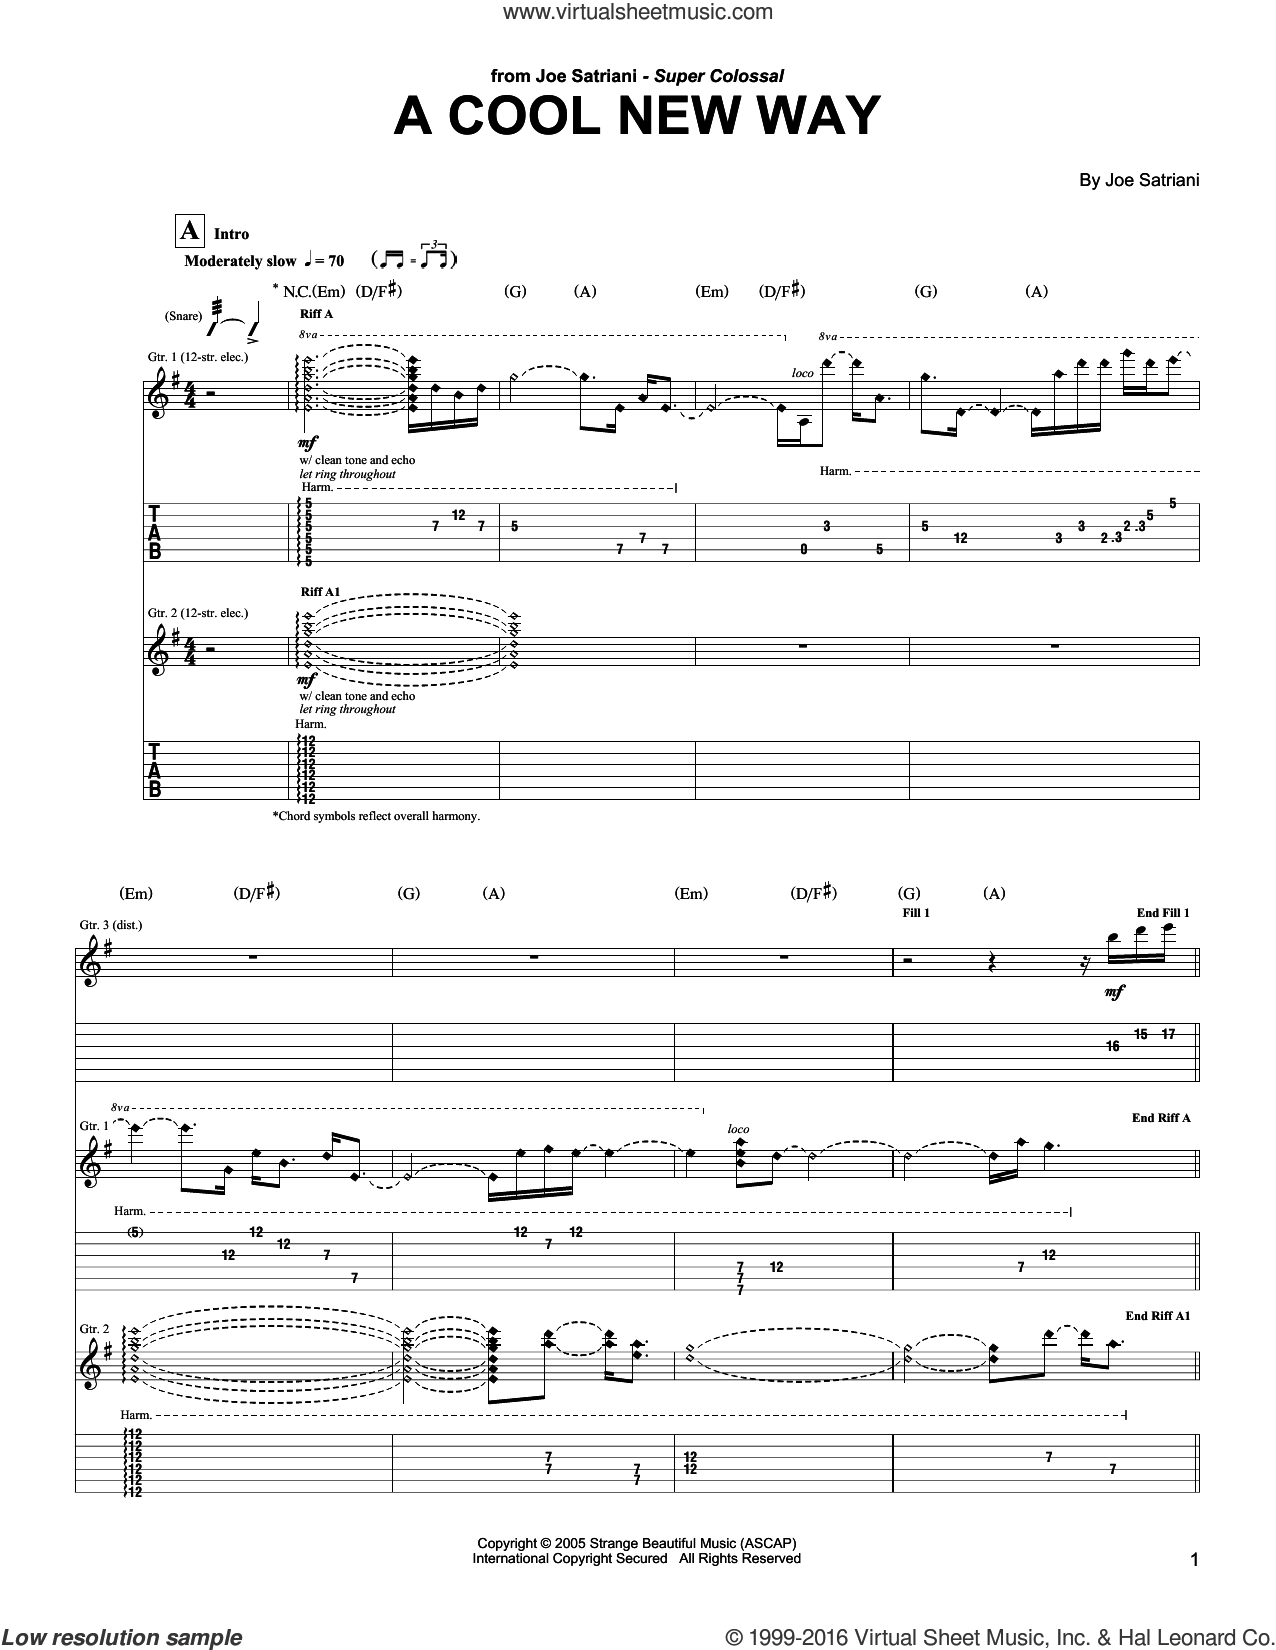 A Cool New Way sheet music for guitar (tablature) by Joe Satriani